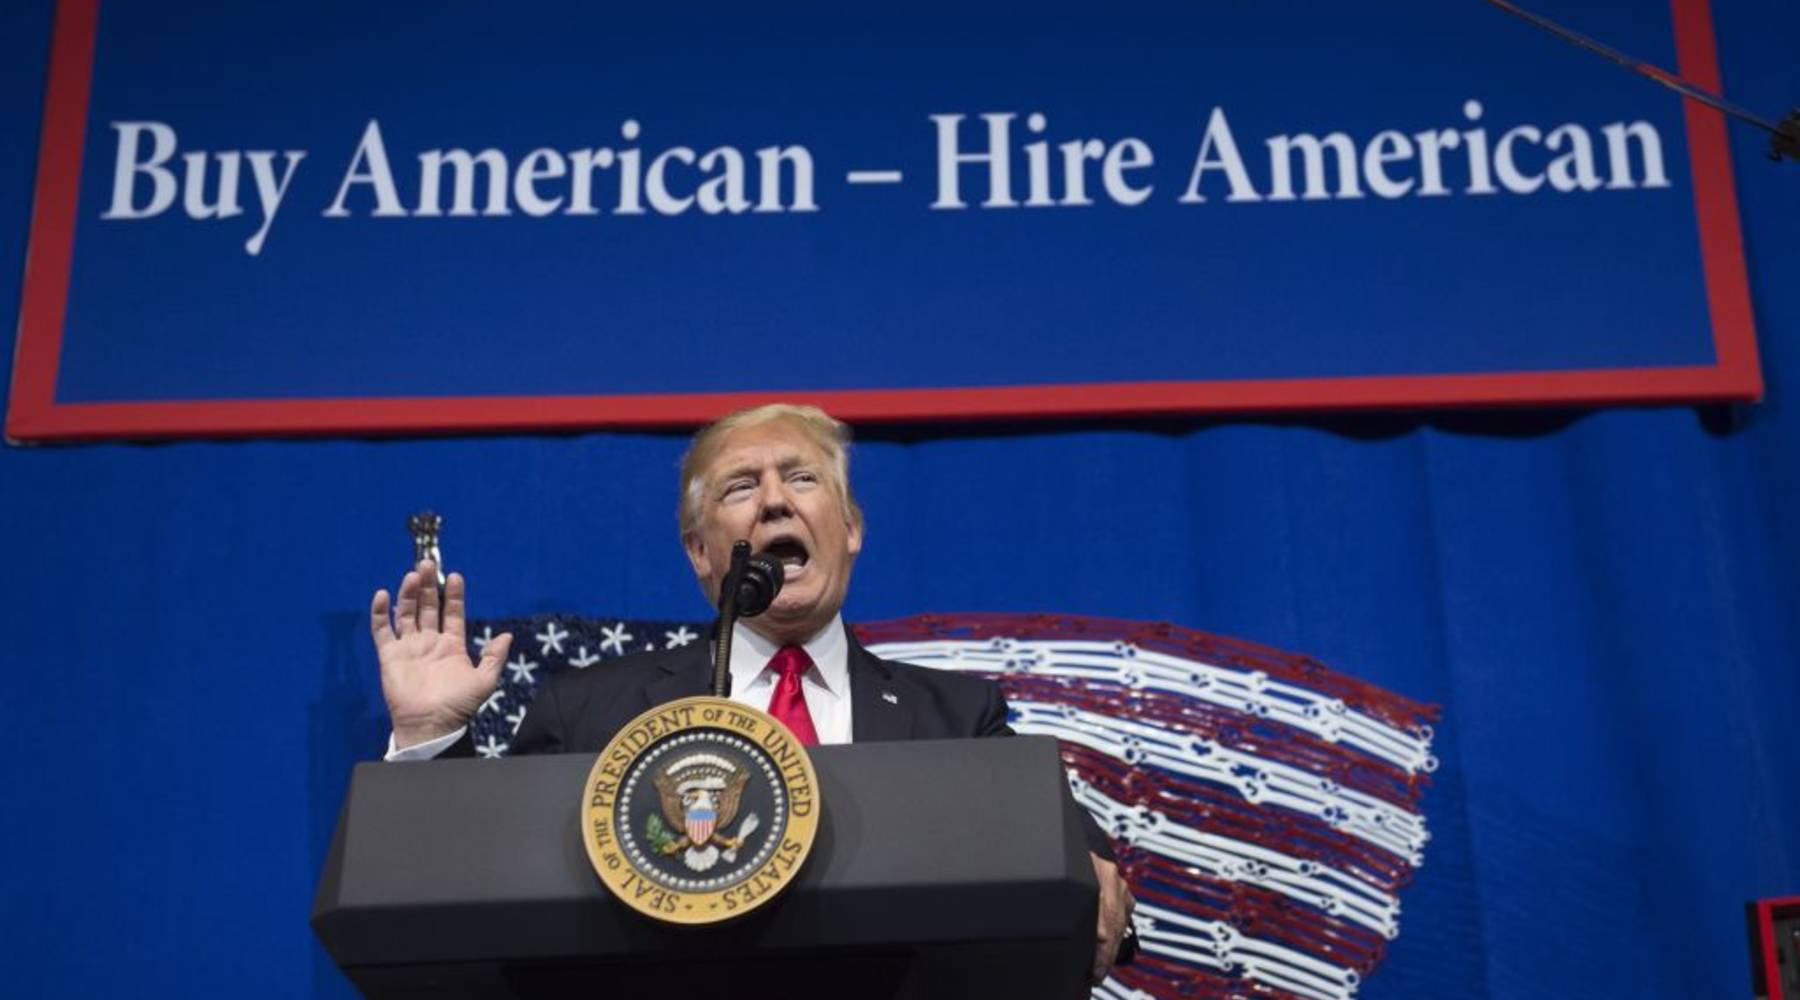 Getting an H-1B visa is becoming more difficult - Marketplace